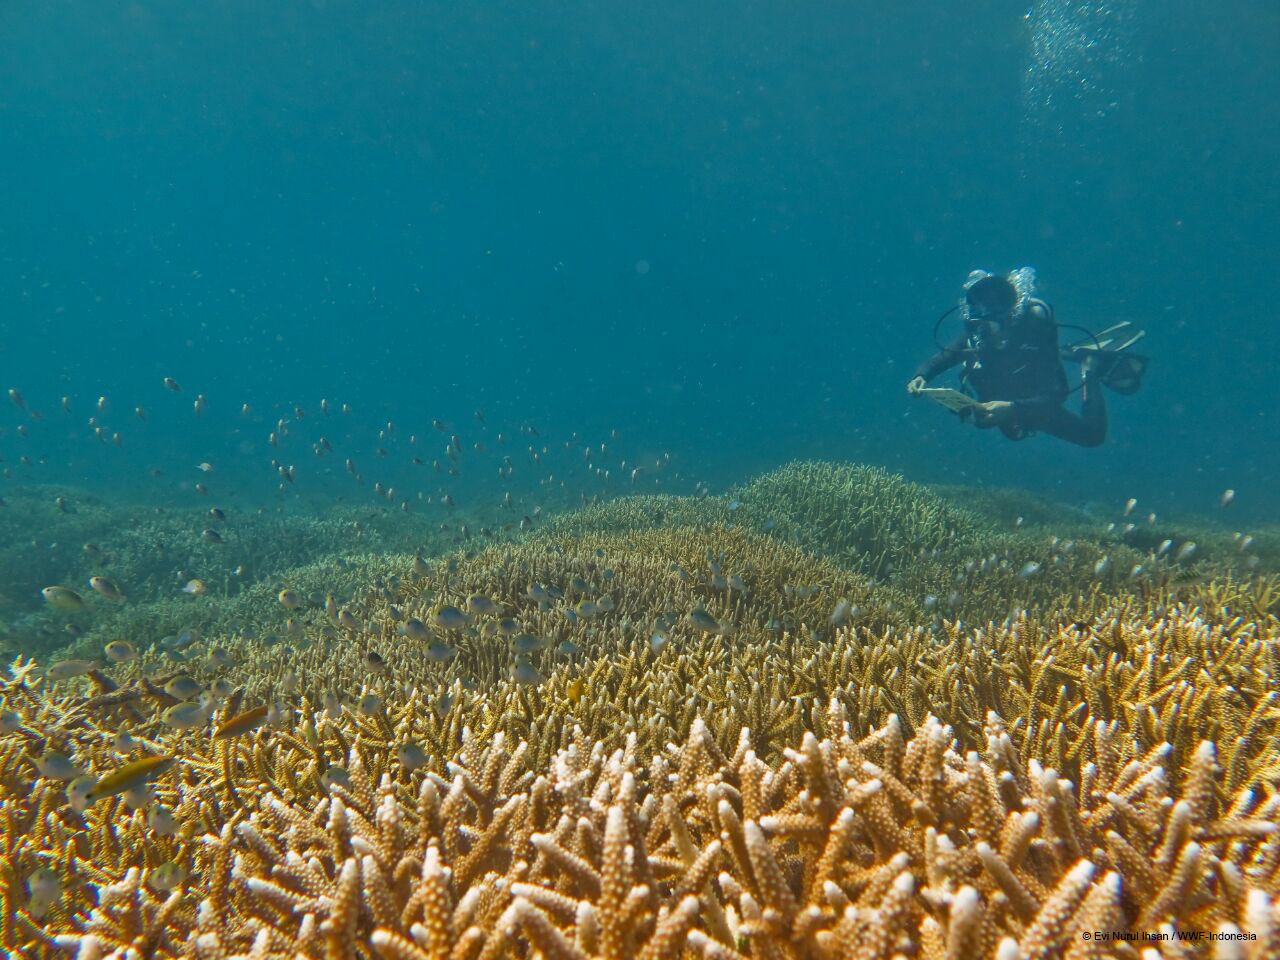 A researcher dives into the waters of Southeast Sulawesi to monitor reef conditions. Photo by Evi Nurul Ihsan/WWF-Indonesia.